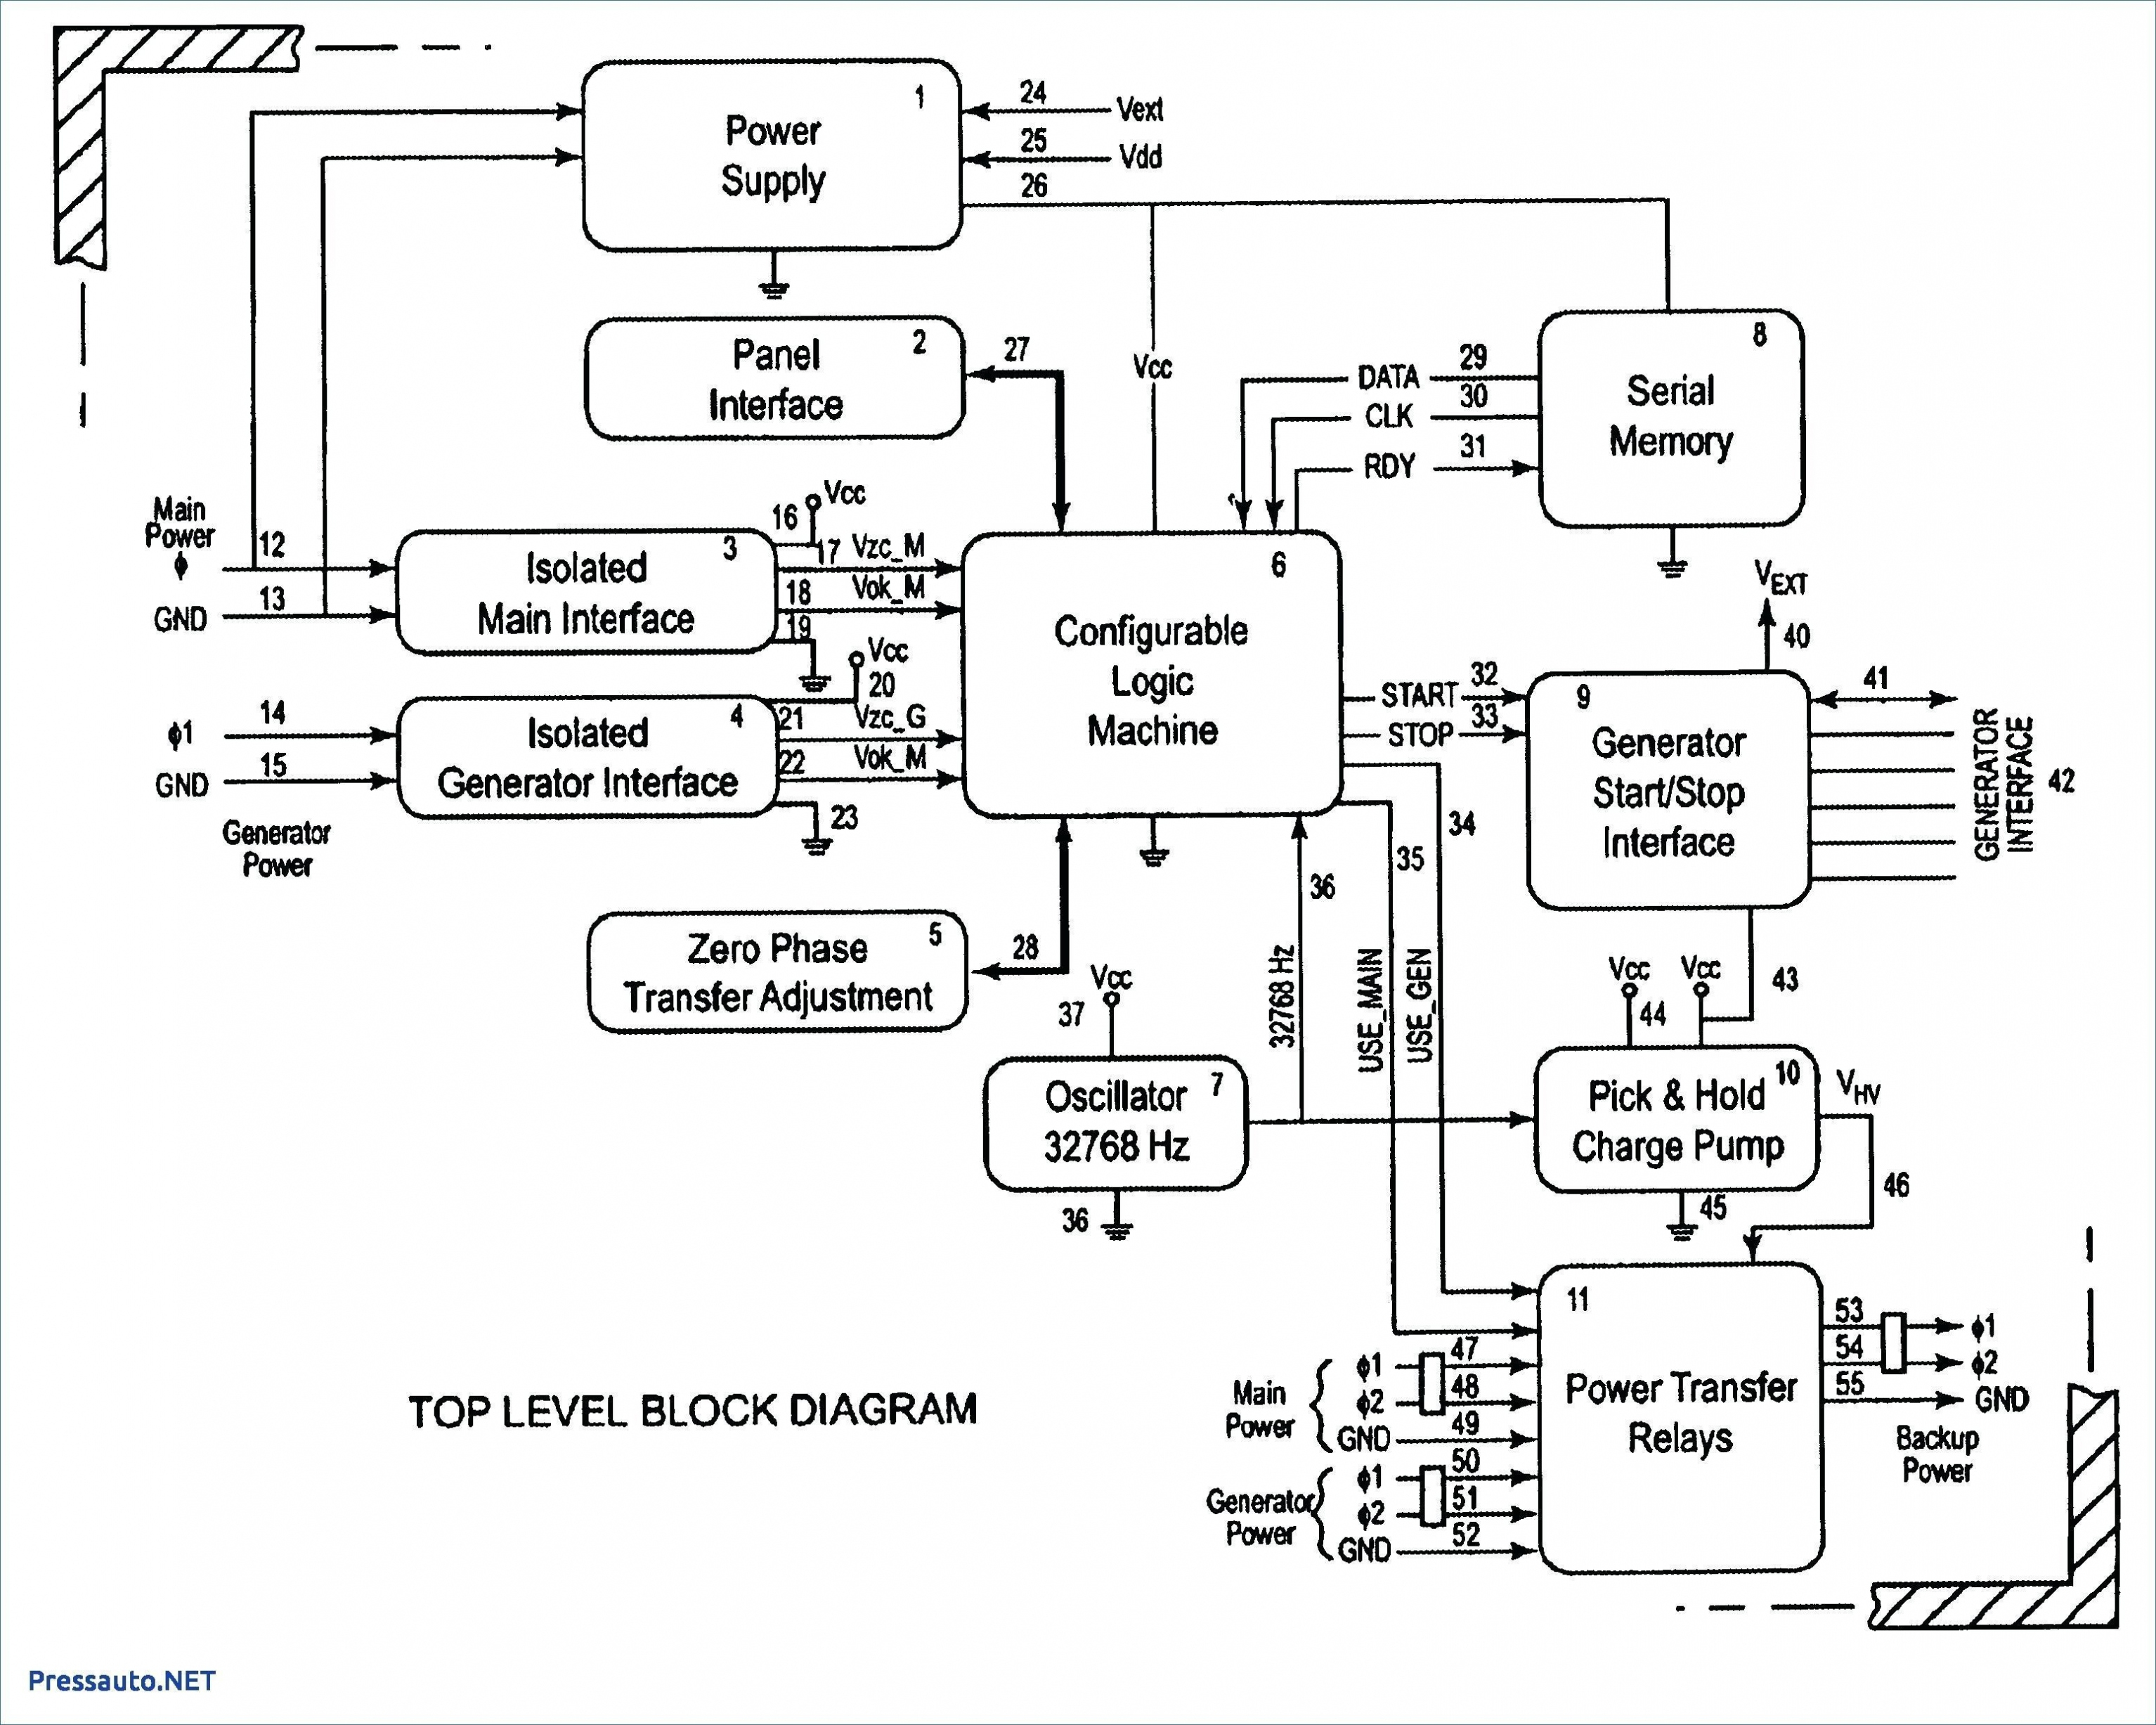 Kohler Command 23 Wiring Schematic | Wiring Library - Kohler Command Wiring Diagram